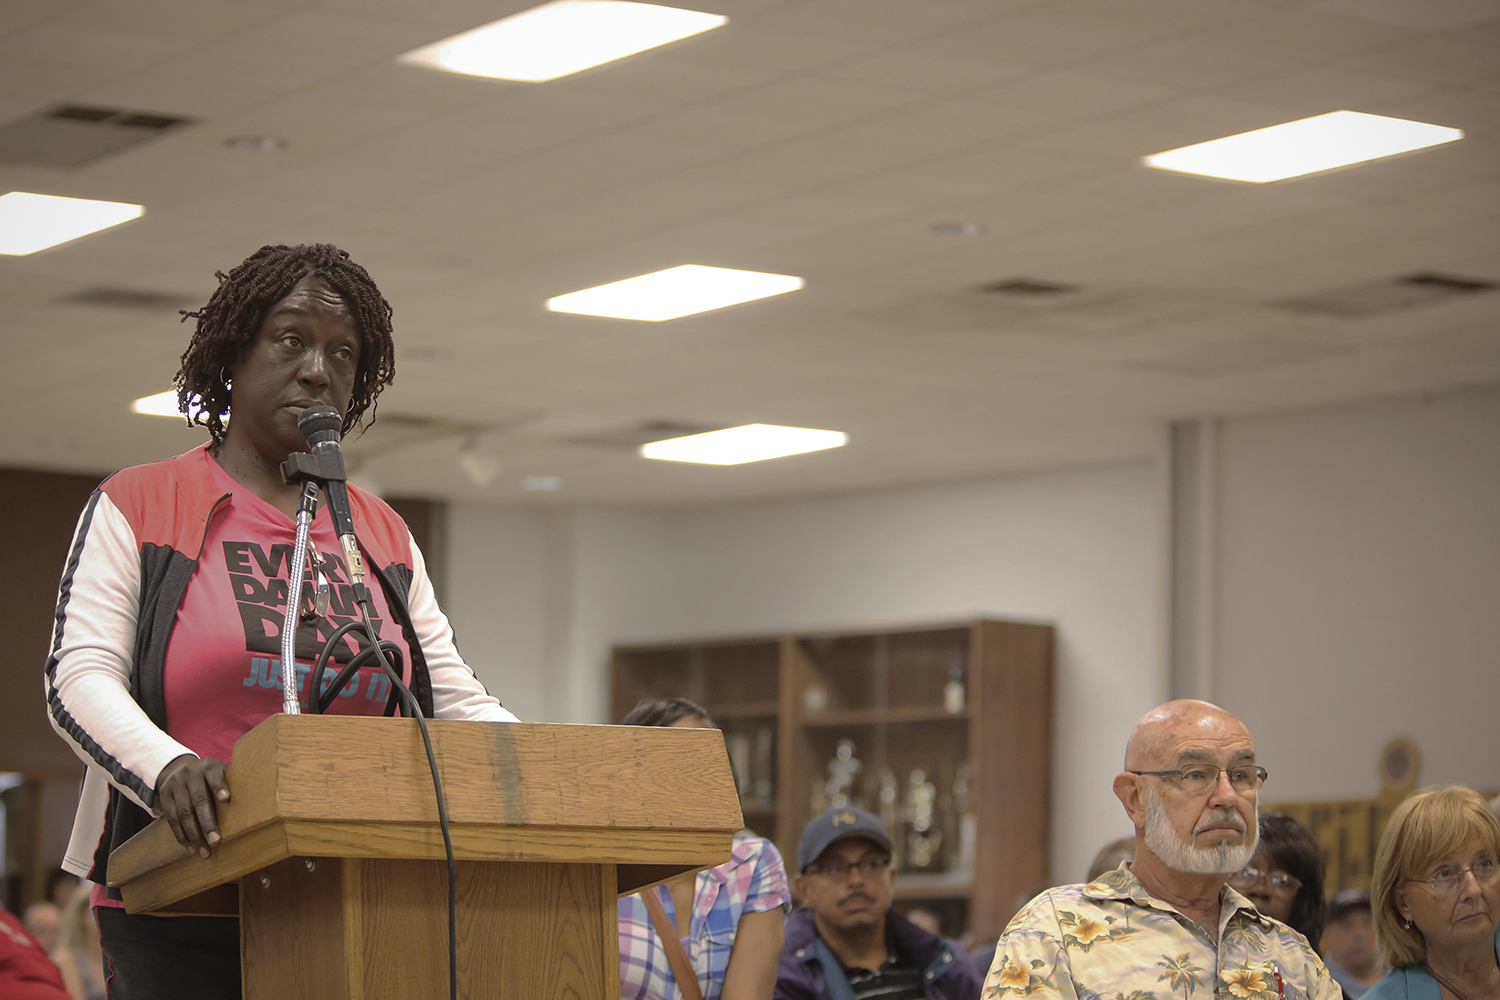 Verdine Day from Detroit, a fire engine operator, asks questions regarding health benefits during the Detroit Police and Fire Pension Fund Meeting on Wed., June 4, 2014 at the IBEW Local 58 in Detroit. Tim Galloway for The New York Times